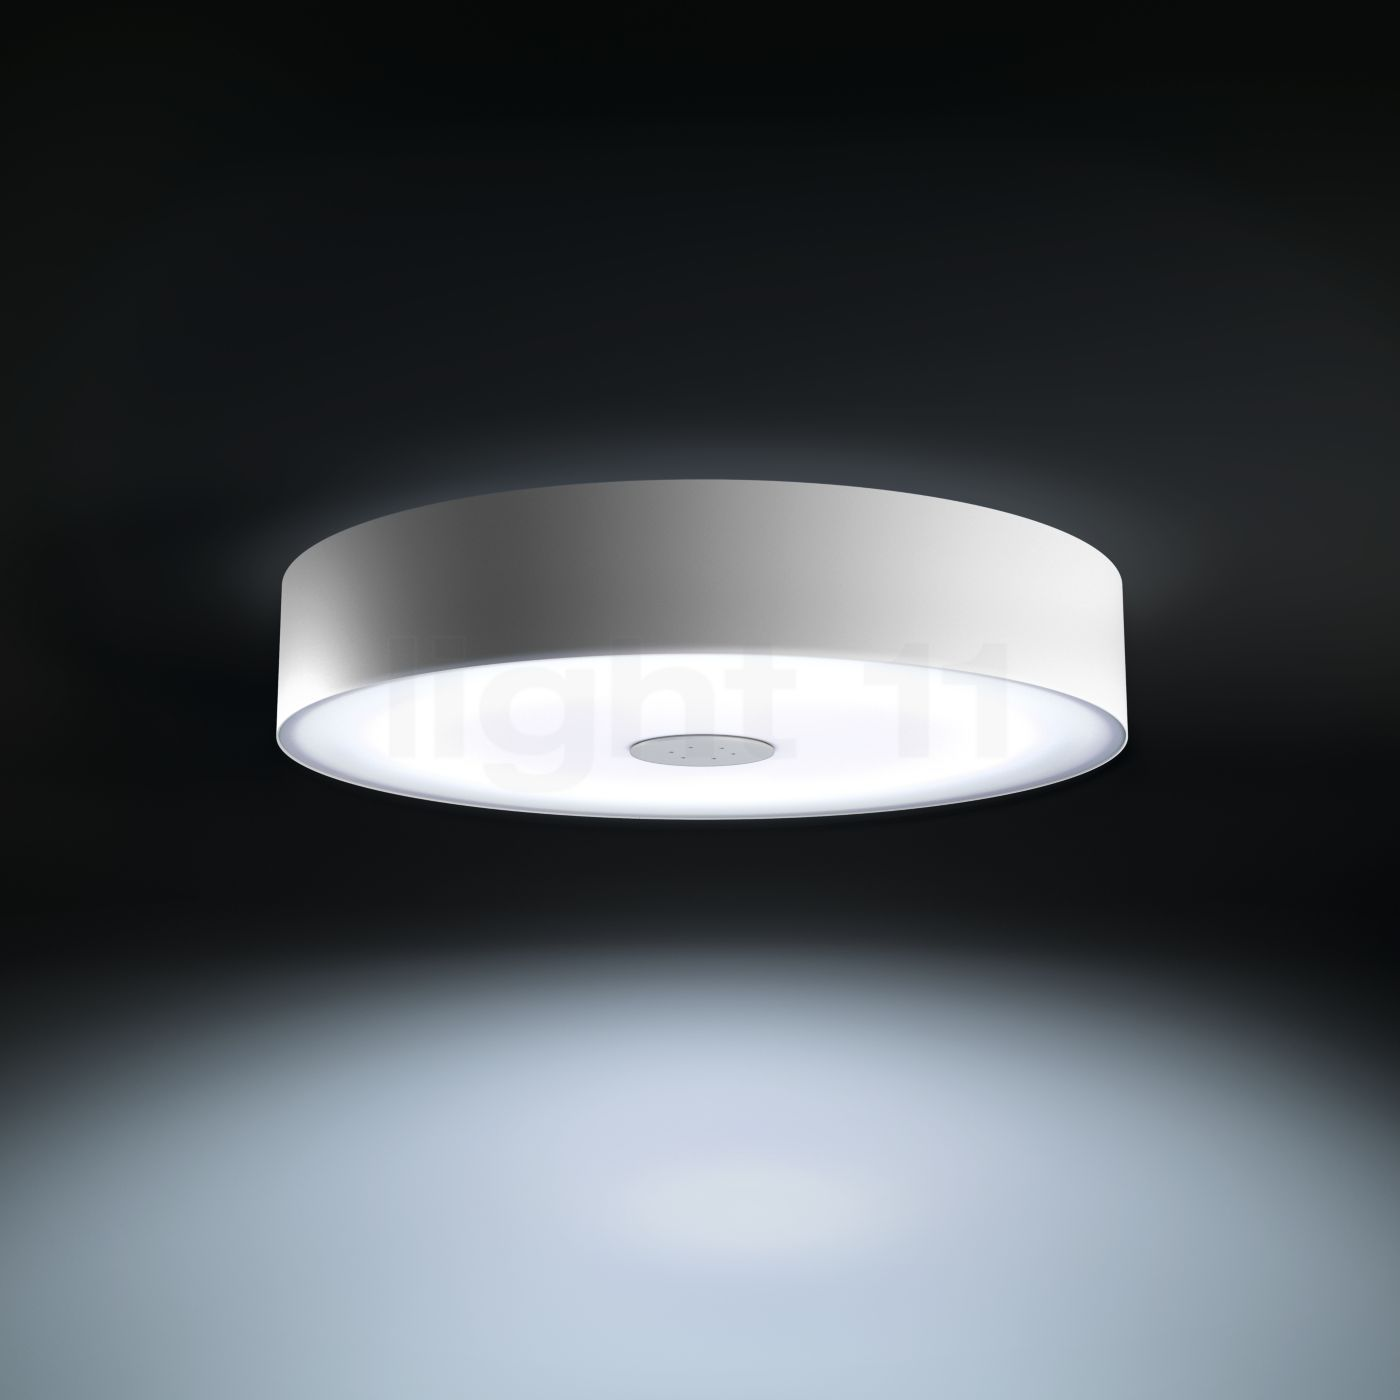 Philips Hue White Ambiance Fair Ceiling Light Beleuchtung Ceiling Lights Hue Lighting